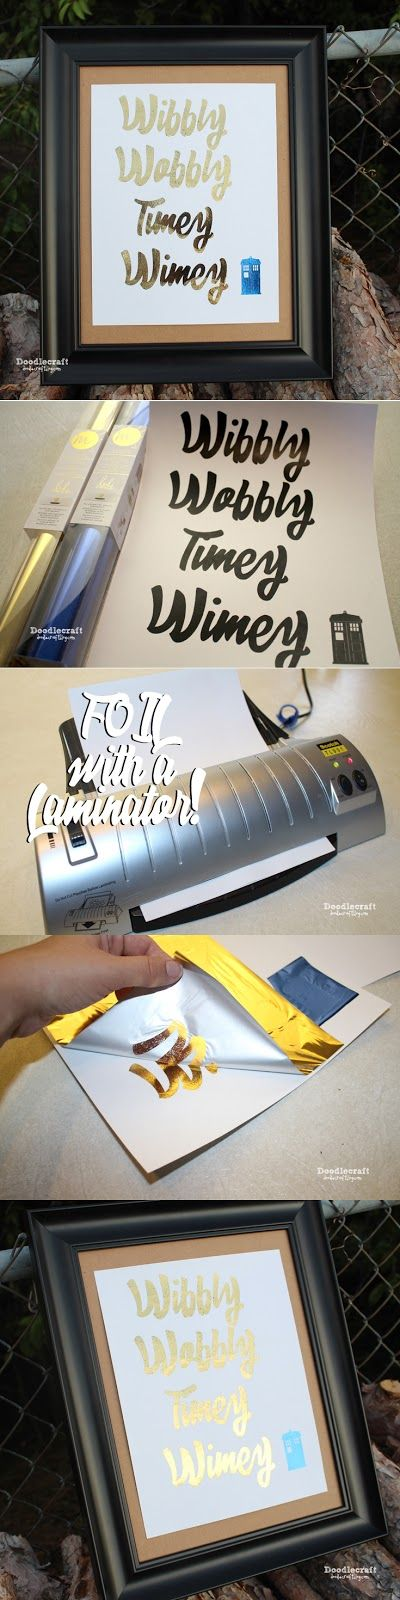 Doctor Who Week!  Gold Foil Timey Wimey Sign!  Foil paper without an expensive machine--using just a laminator!  Awesome!